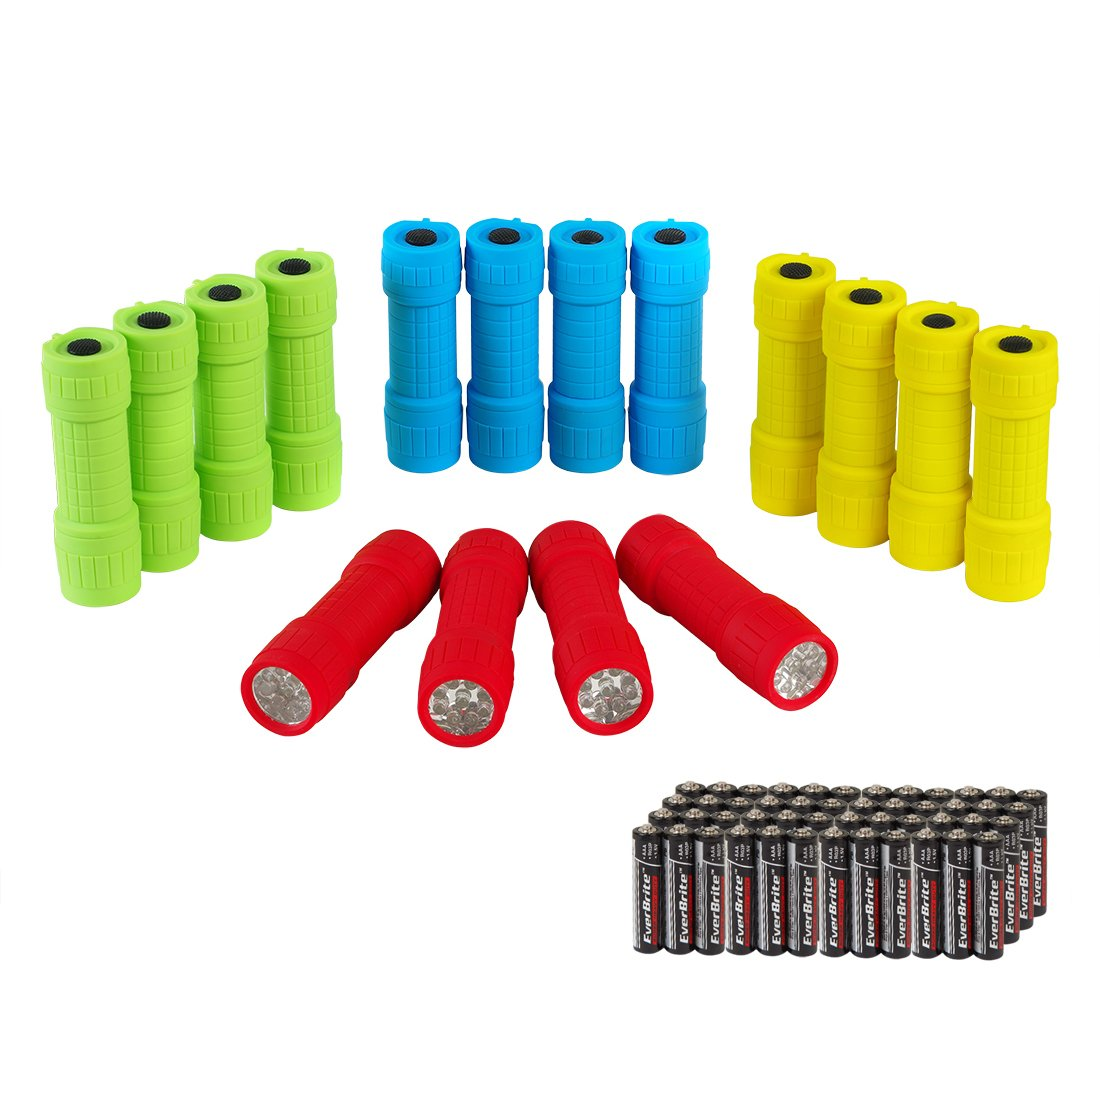 EverBrite 16-pack Mini LED Flashlight with Lanyard Assorted Colors Batteries Included